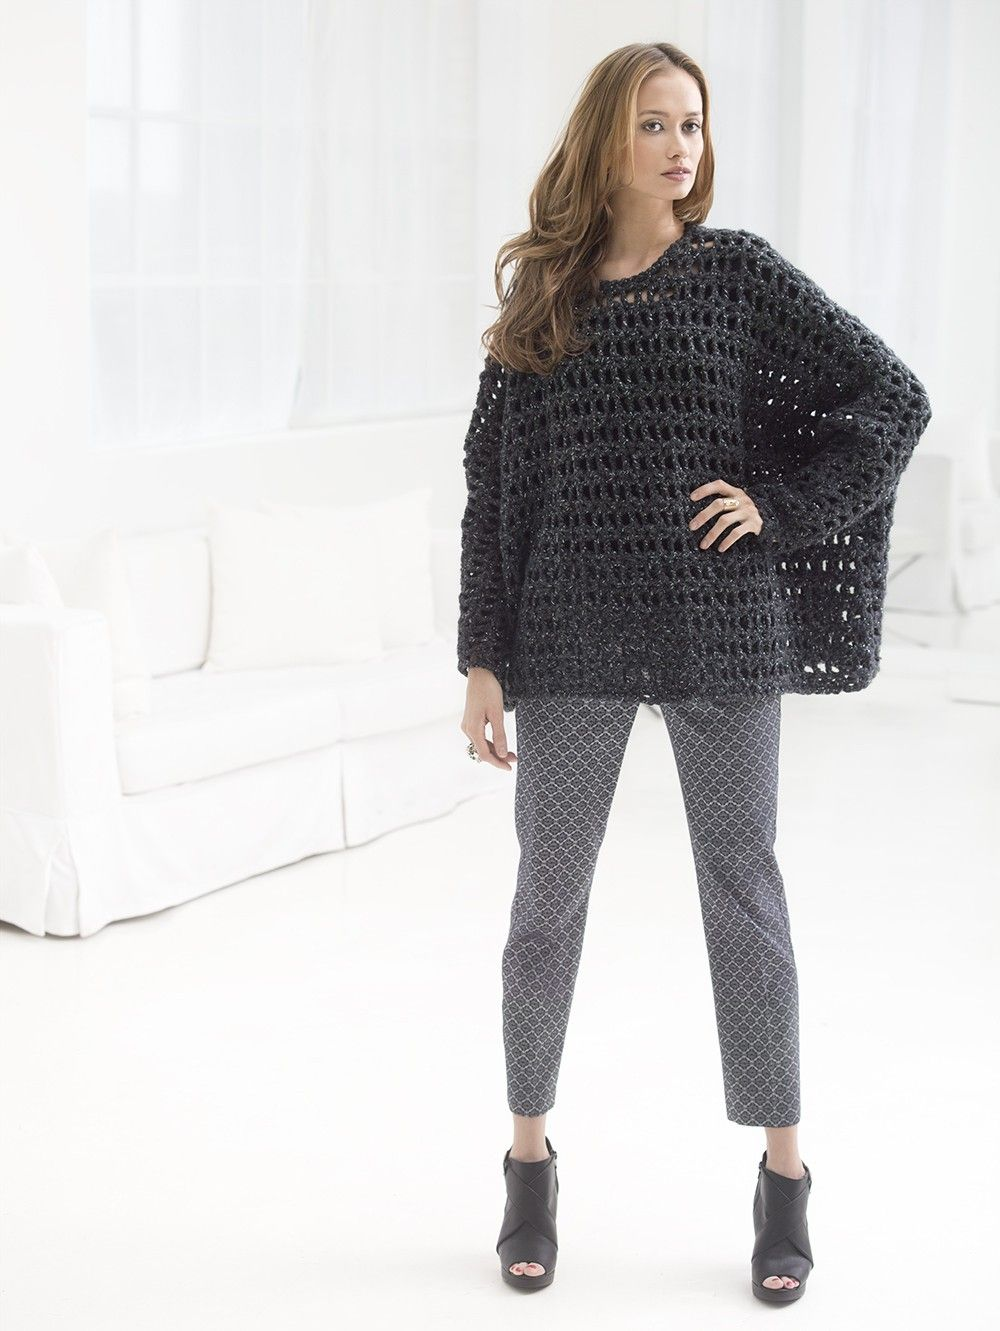 Popover Top (Crochet) | Watch Me Crochet-chet | Pinterest | Crochet ...